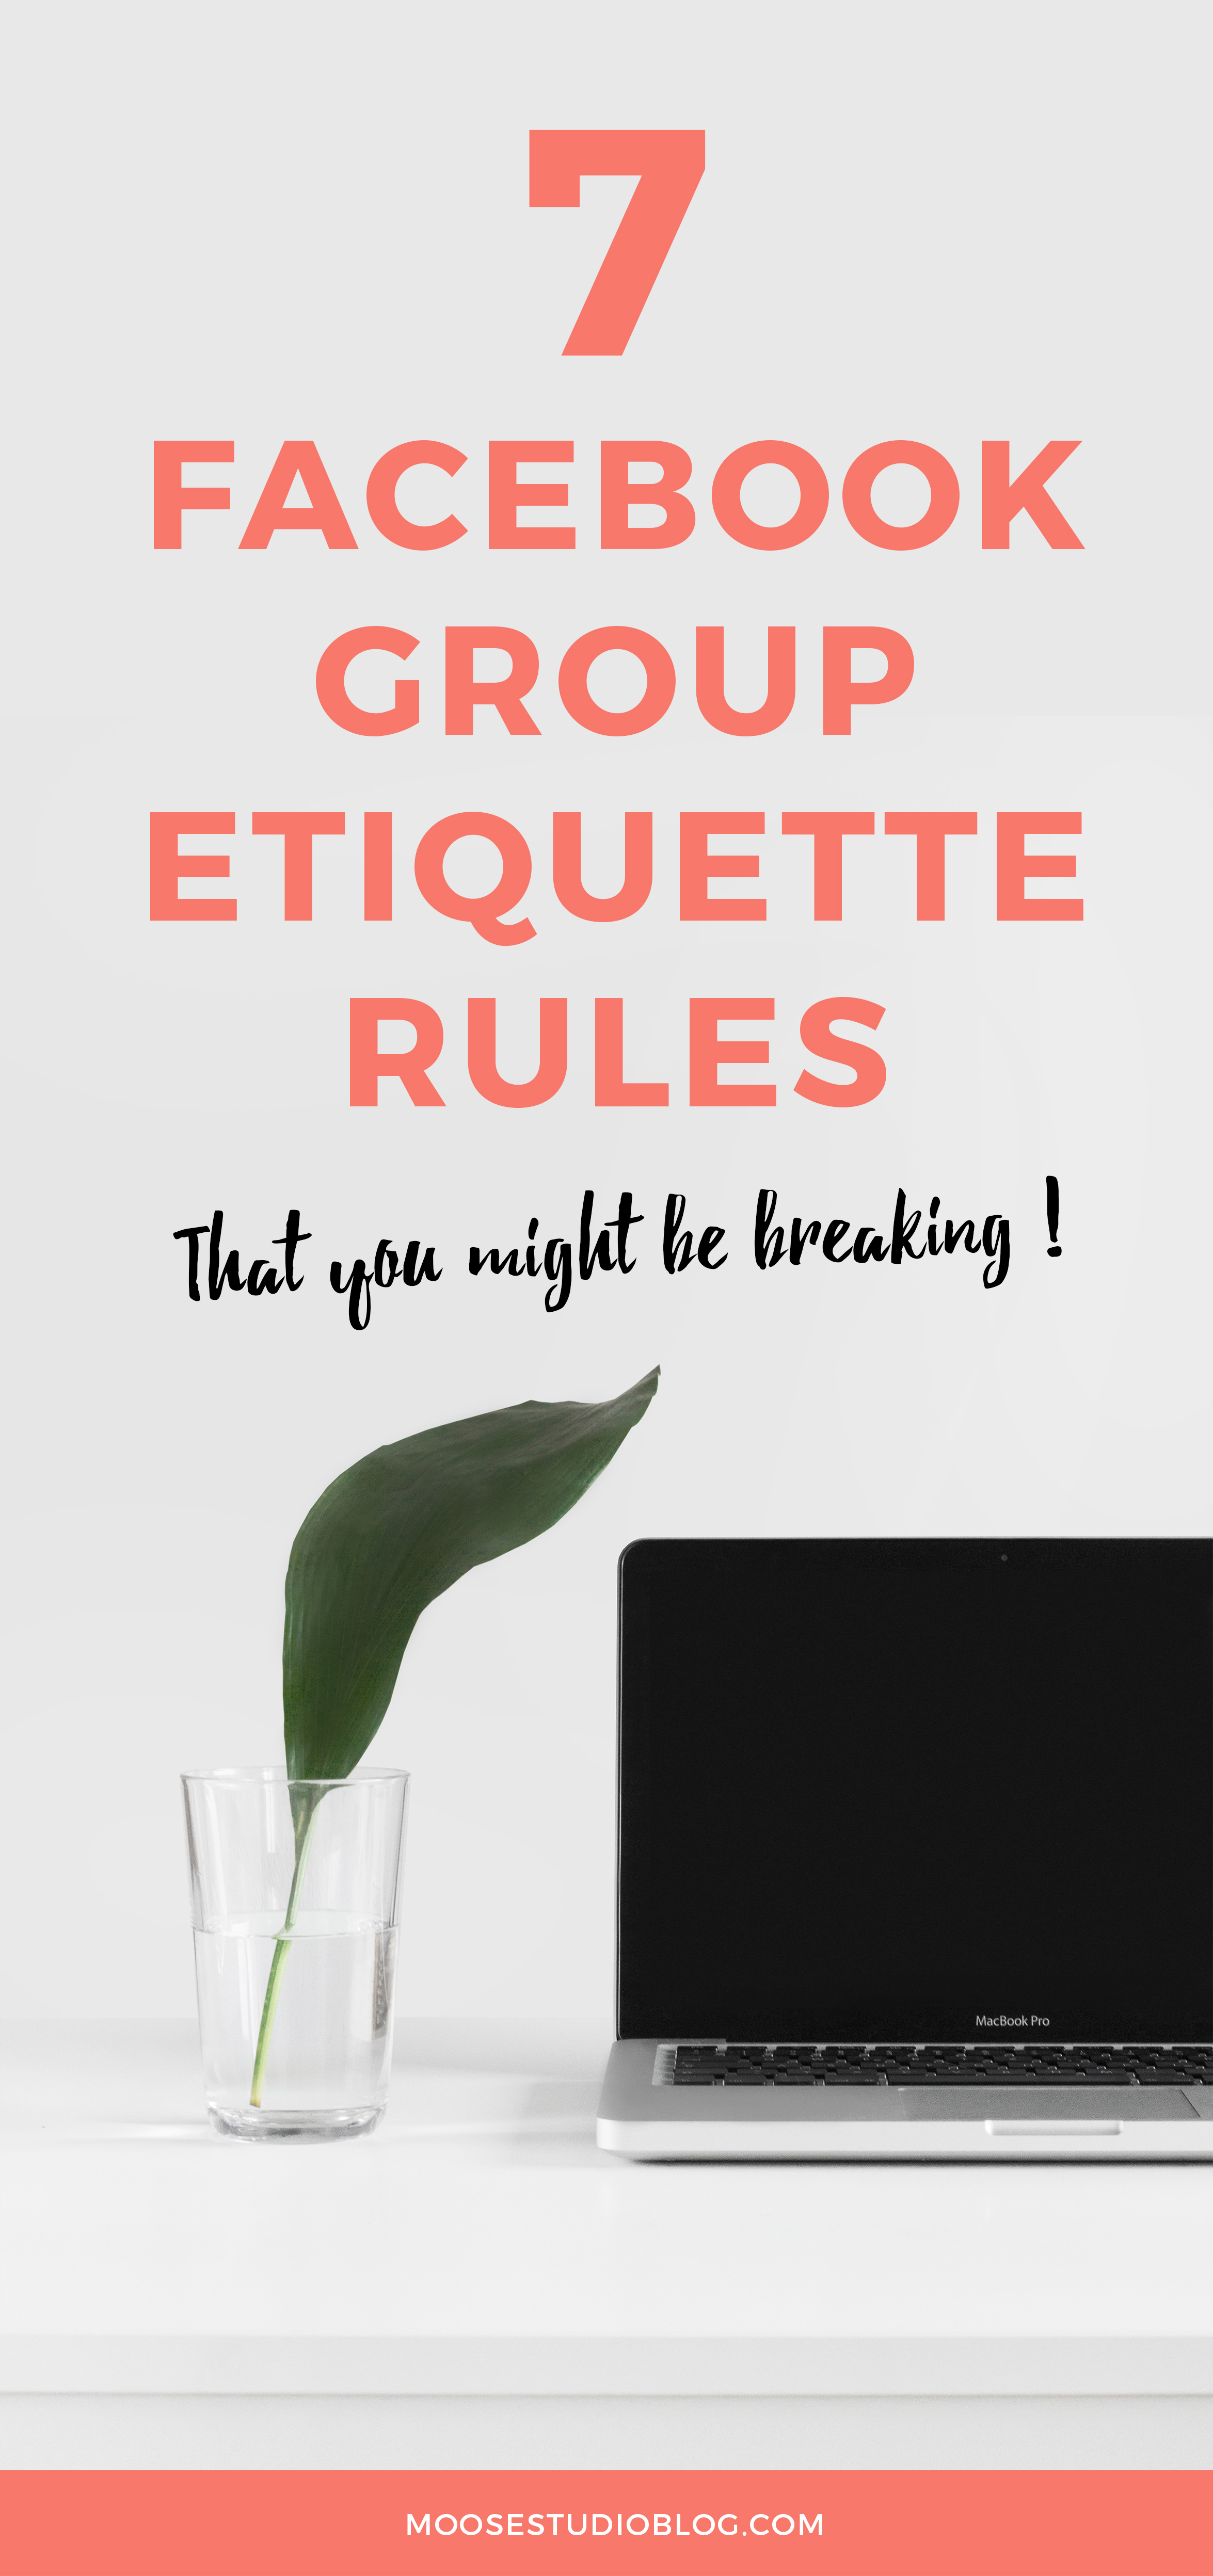 Facebook Group Etiquette